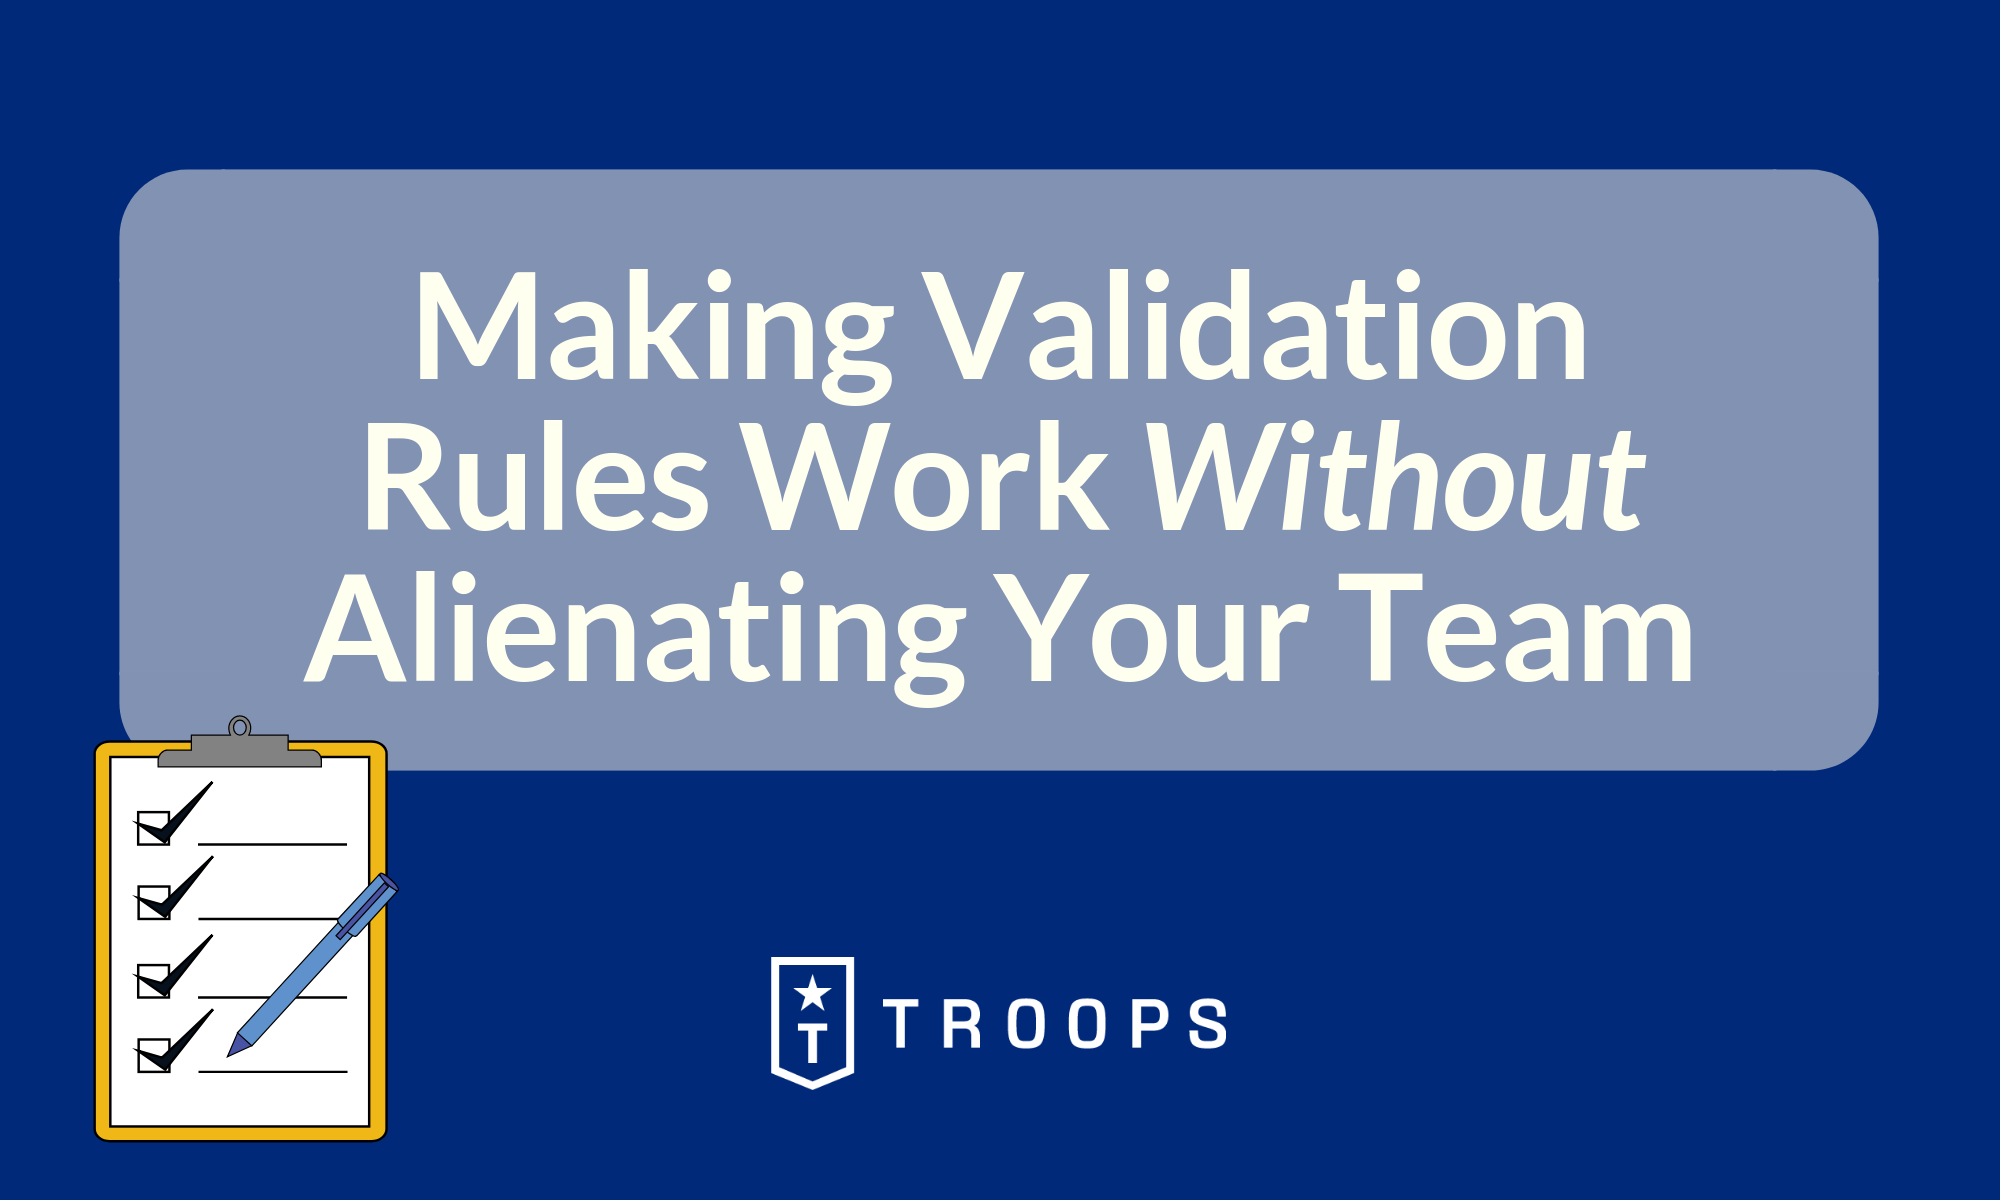 Making Validation Rules Work Without Alienating Your Team